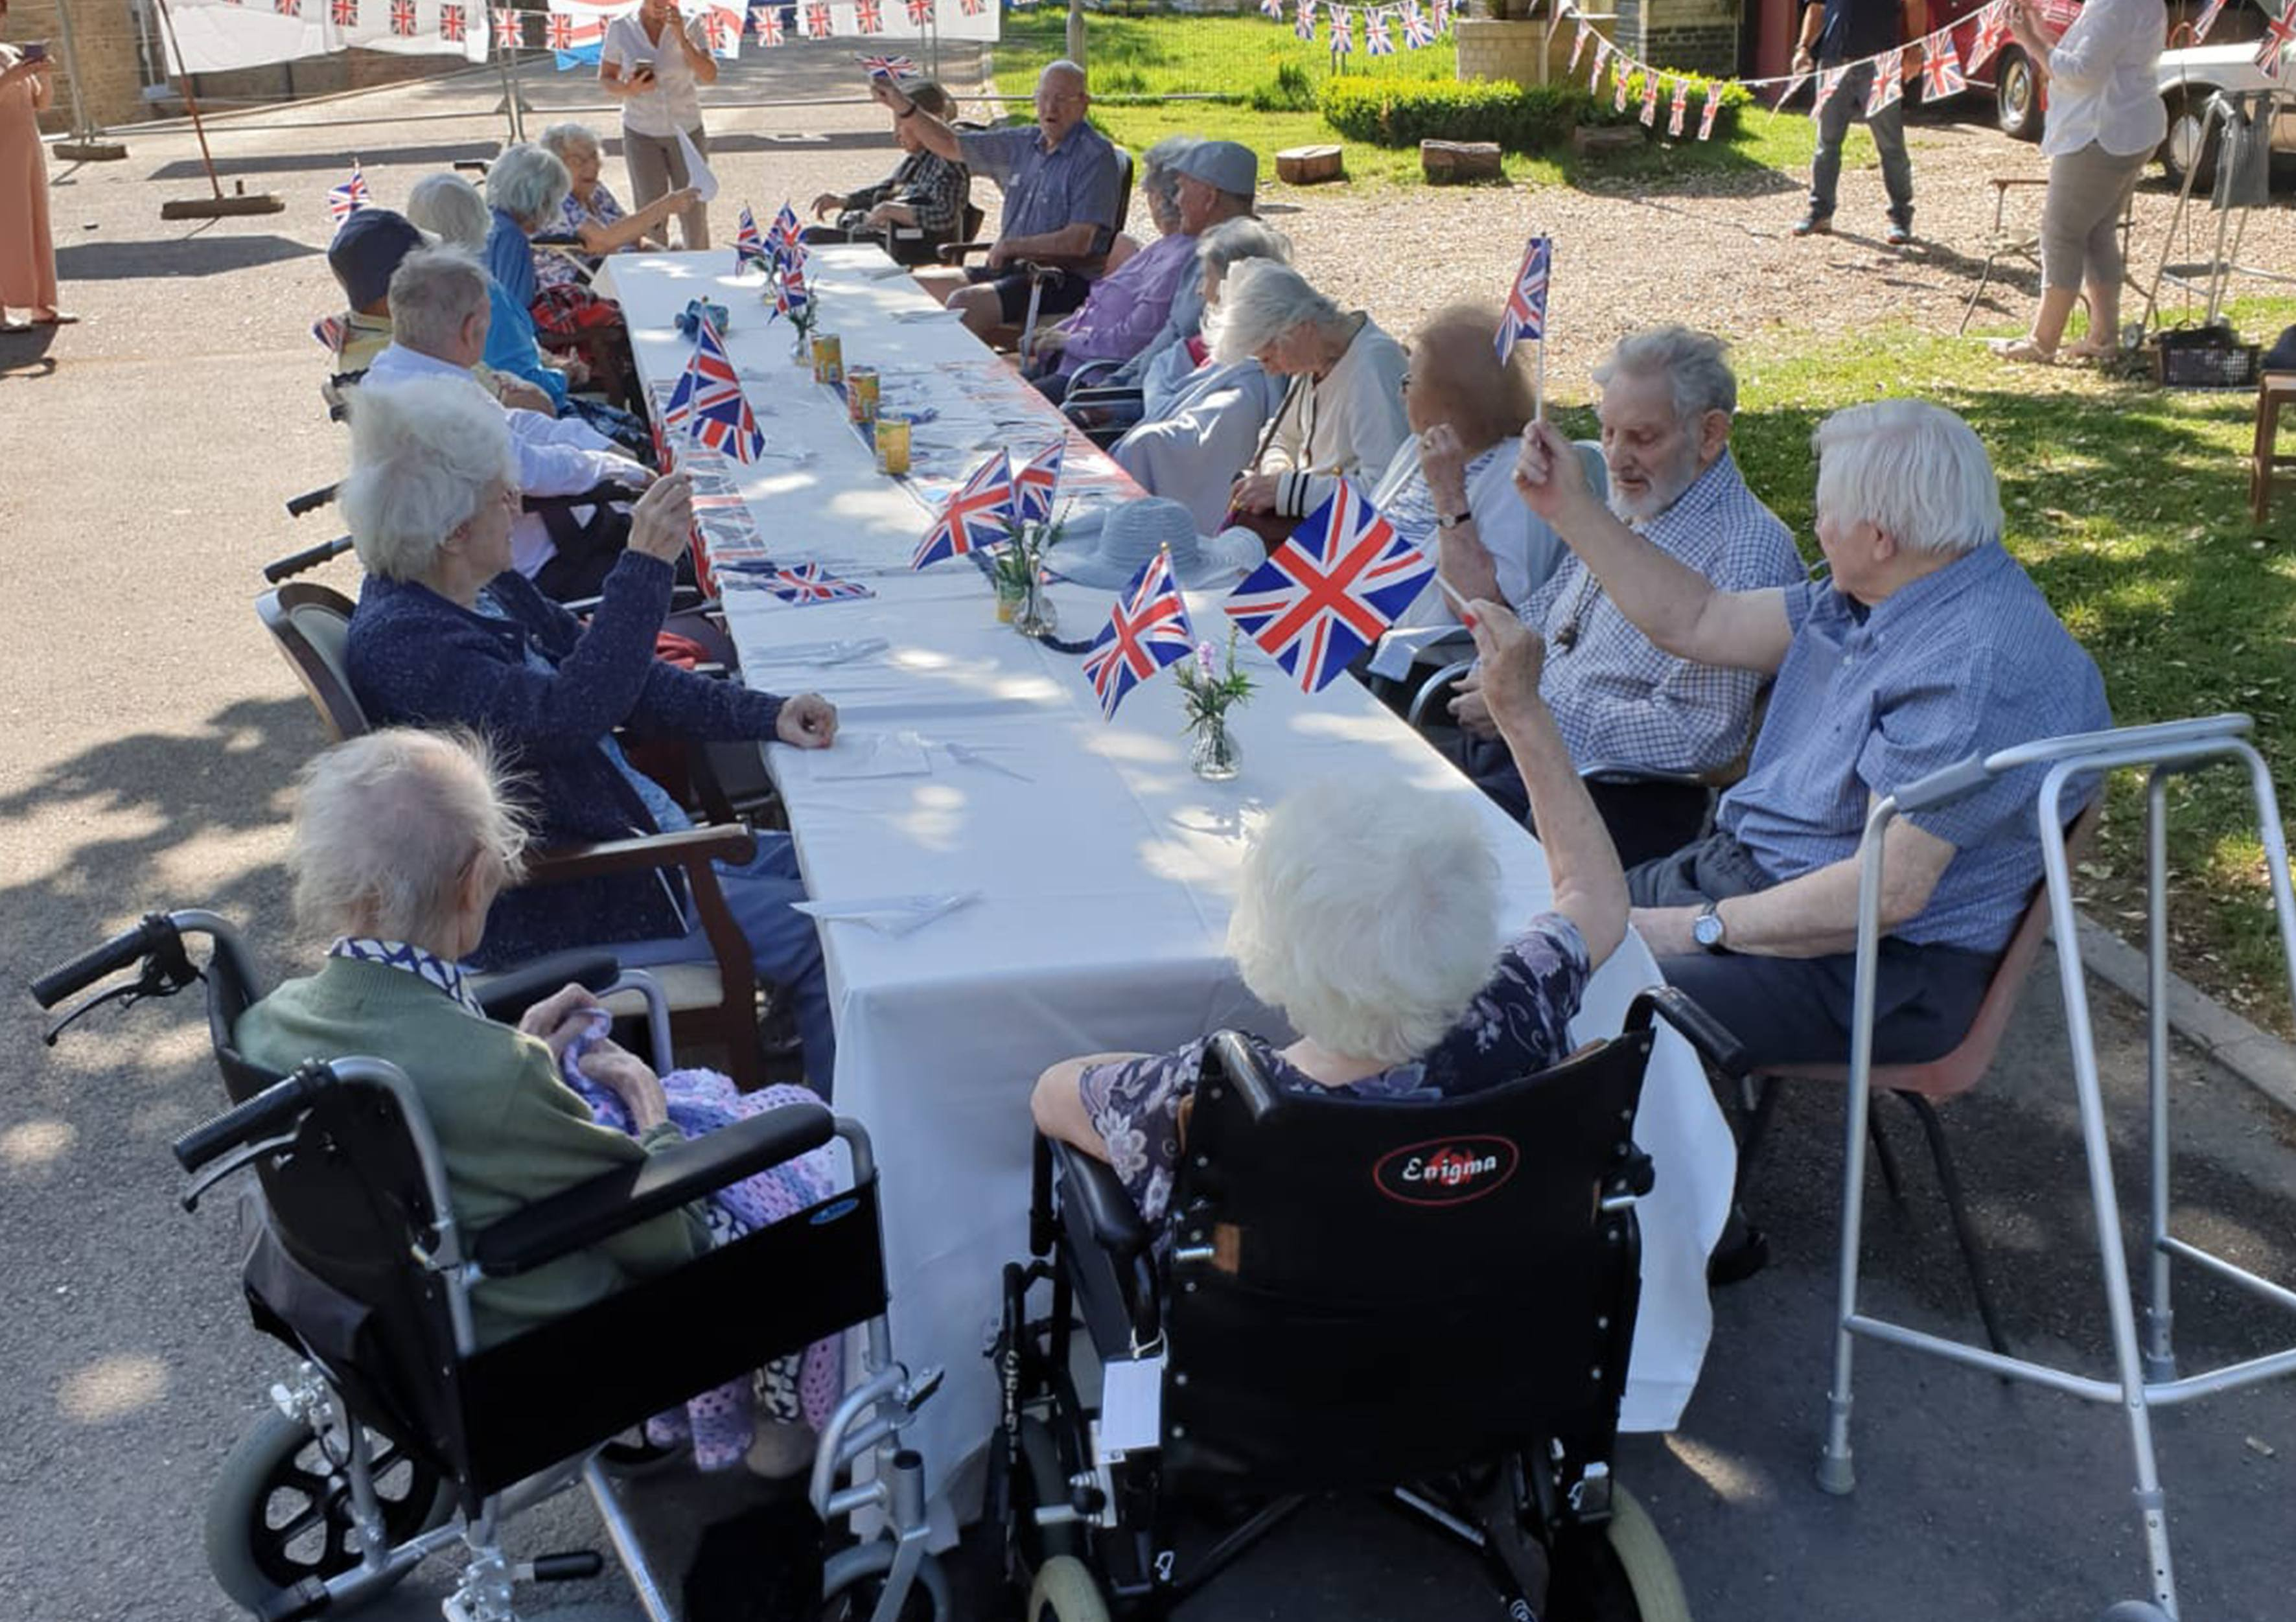 Our street party, held on the Blackbrook House driveway